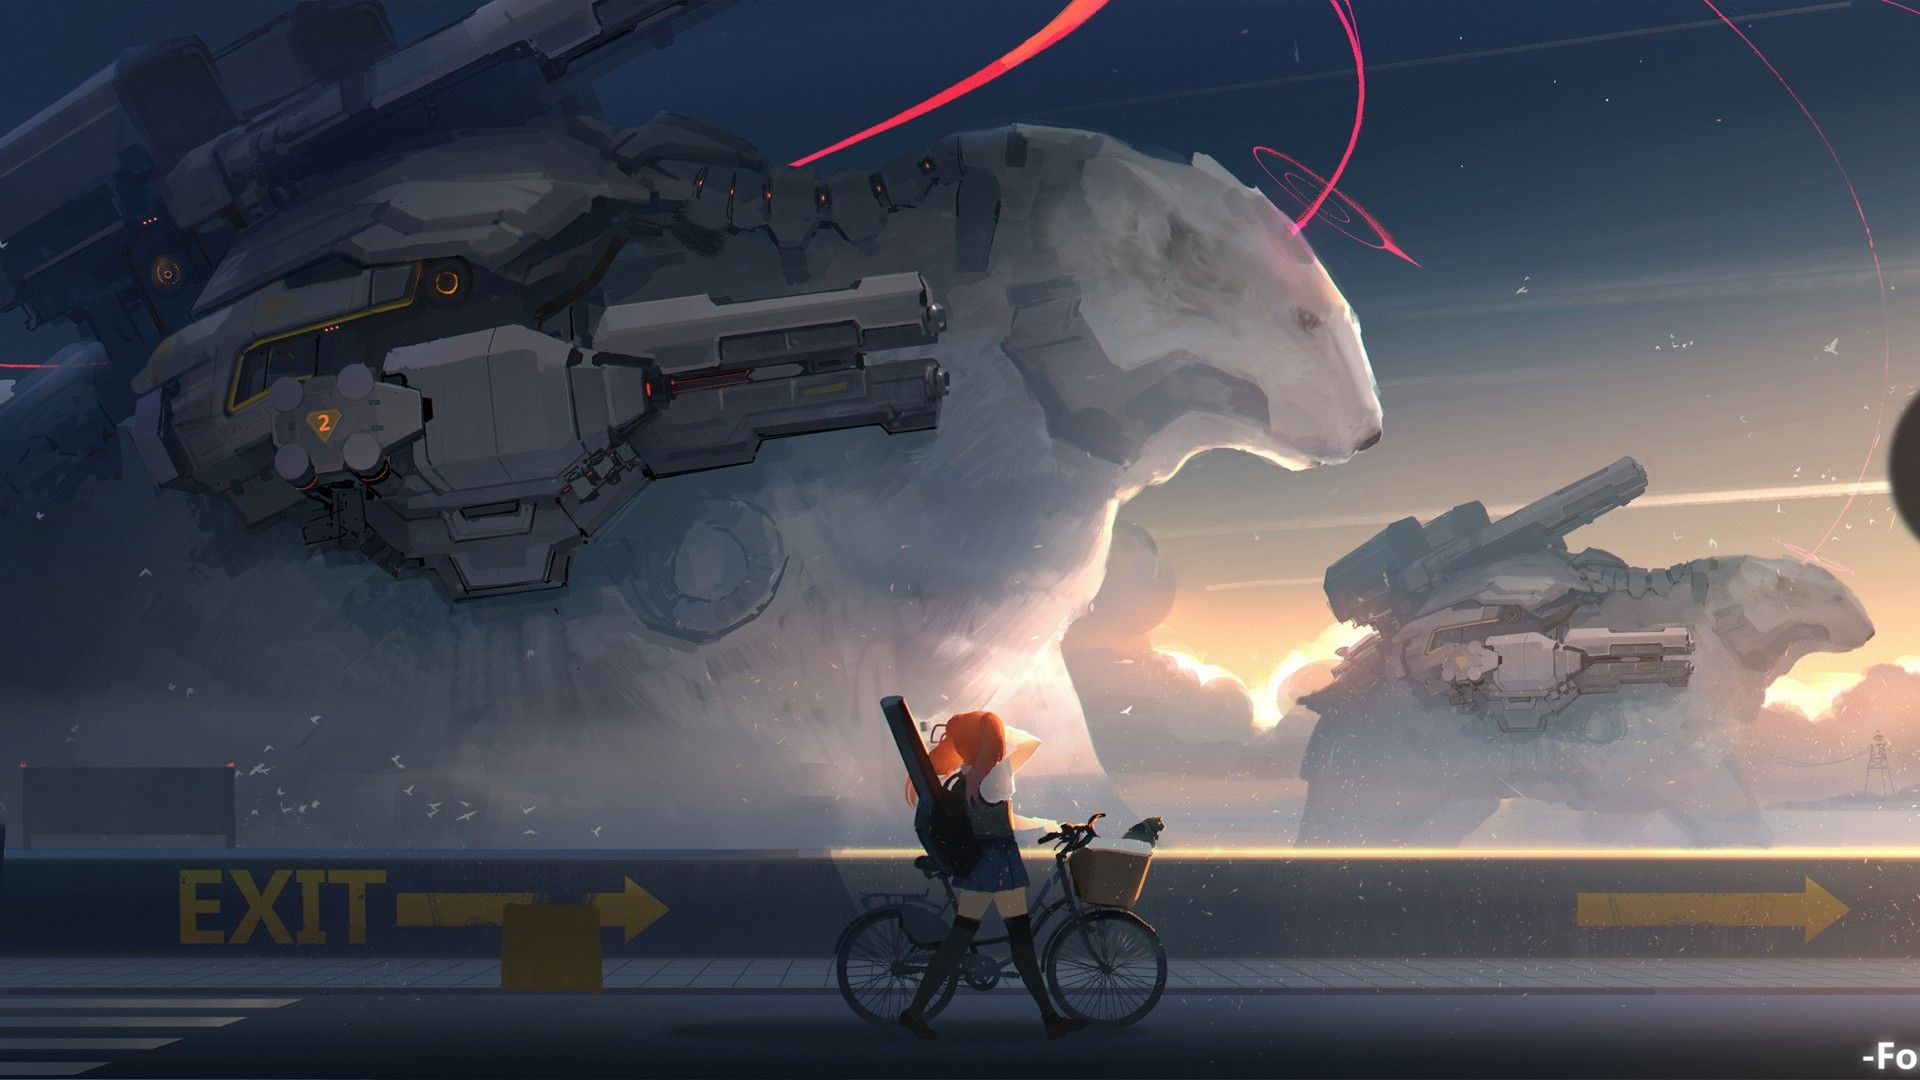 1920x1080 Download 1920x1080 Anime Girls, Sci-fi, Heavy Weapons, Bicycle ...